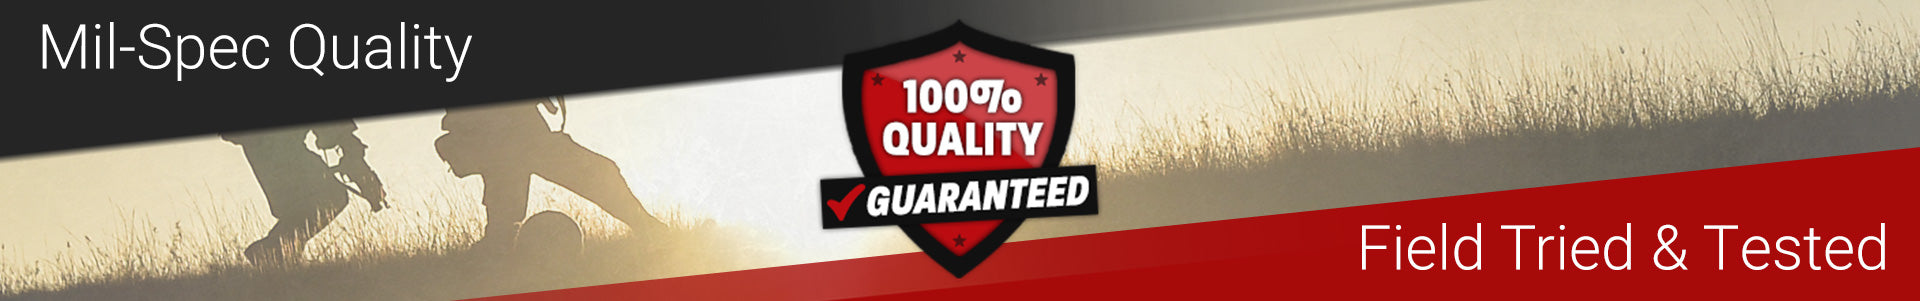 Bulldog Quality Guarantee